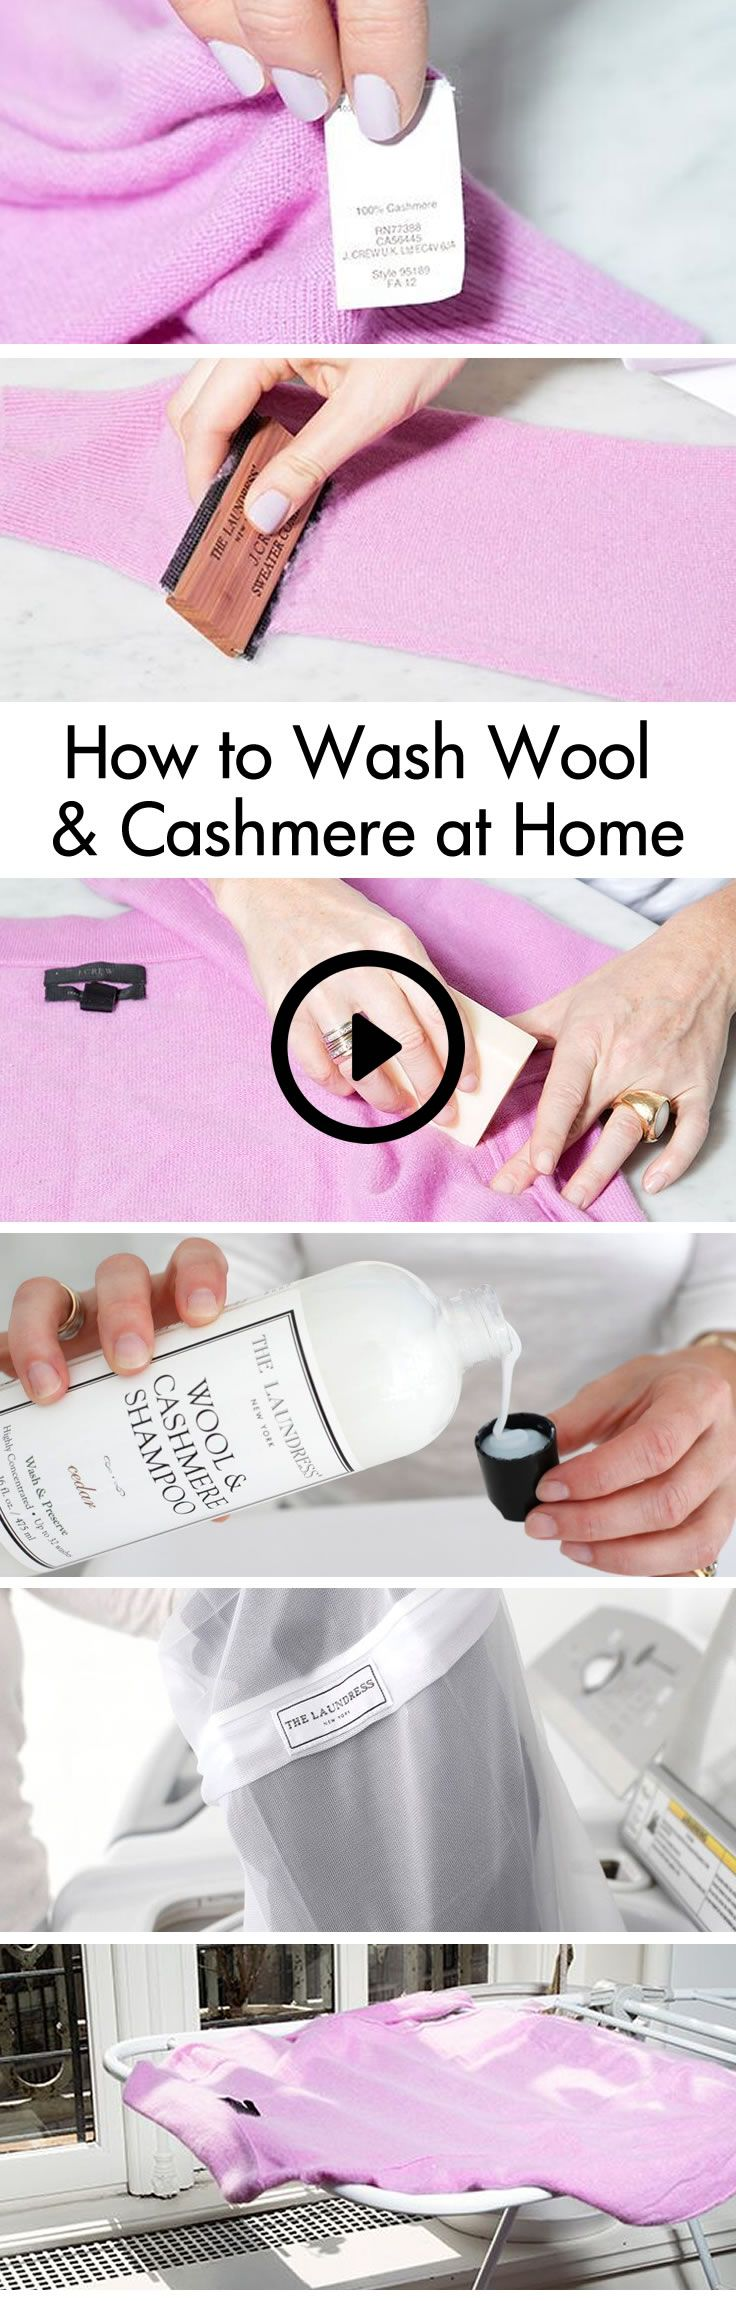 "Did you know 90% of your ""Dry Clean Only"" items can actually be machine washed? Save money and time by washing at home. Click to watch this step by step how-to video on washing winter knits, incluidng wool and cashmere, at home. #thelaundress"